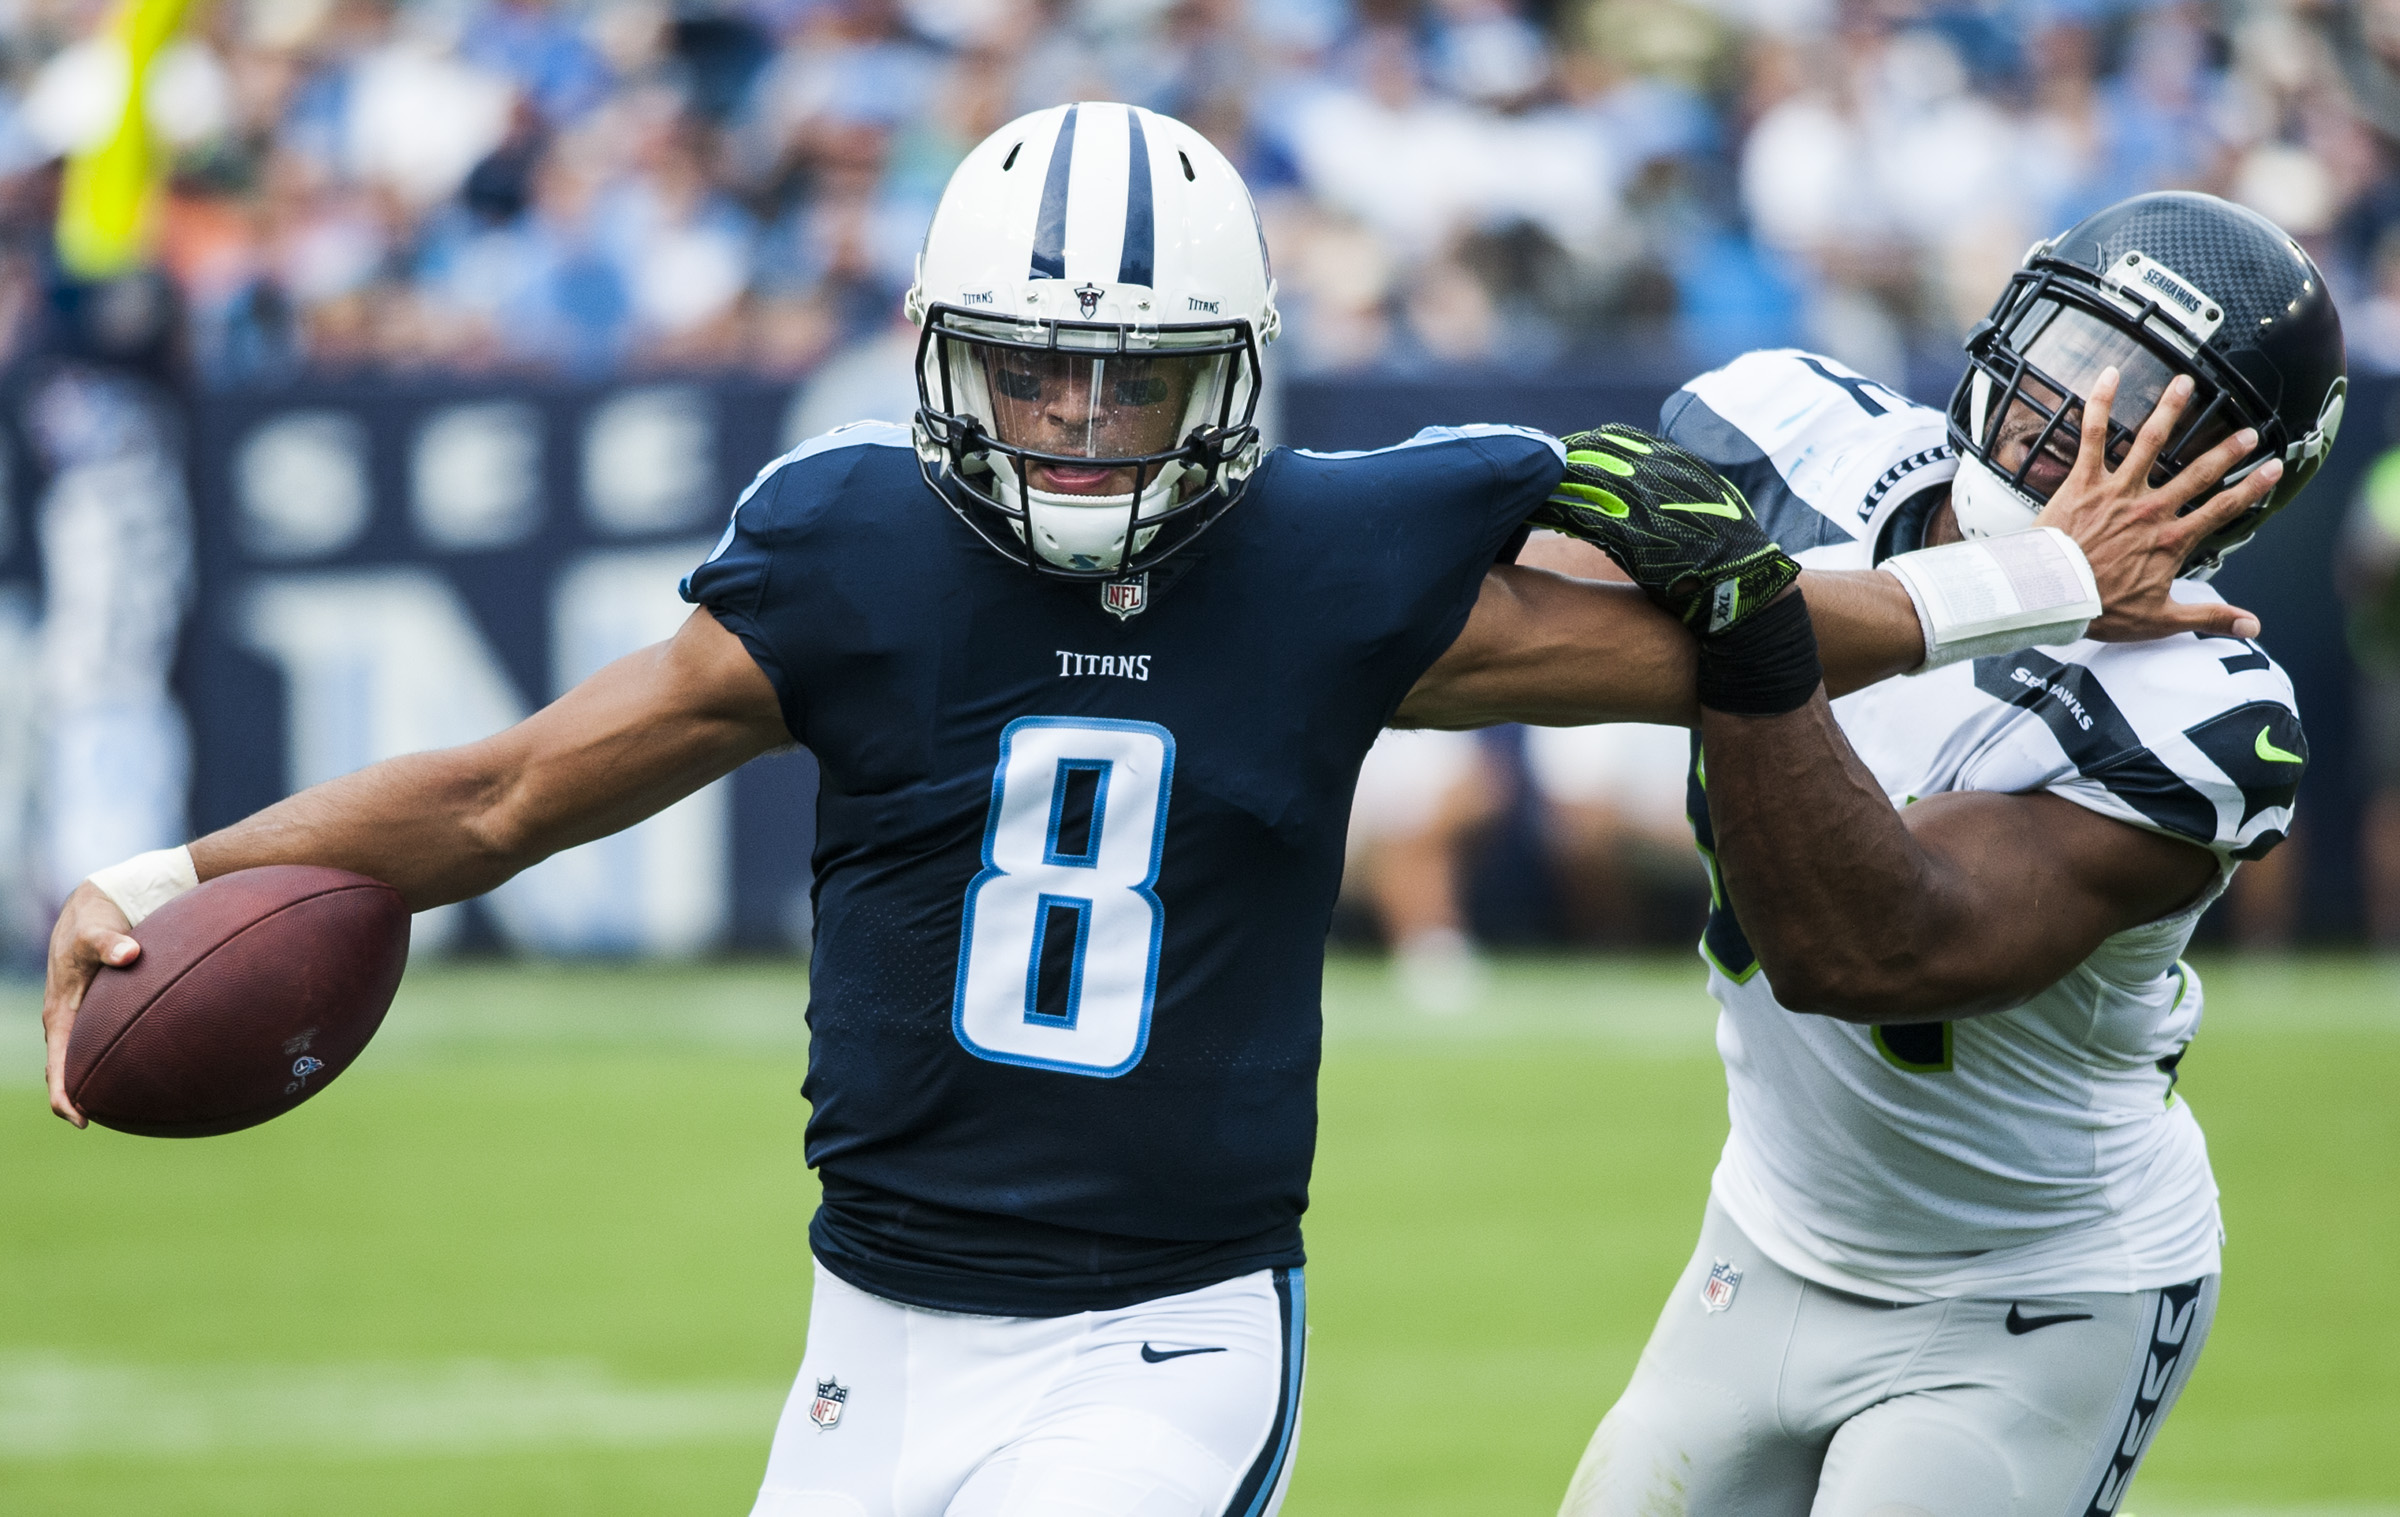 Tennessee Titans quarterback Marcus Mariota (8) stiff-arms Seattle Seahawks middle linebacker Bobby Wagner (54) as he runs out of bounds during the Titans' 33-27 win over Seattle on Sunday, Sept. 24, 2017, at Nissan Stadium.